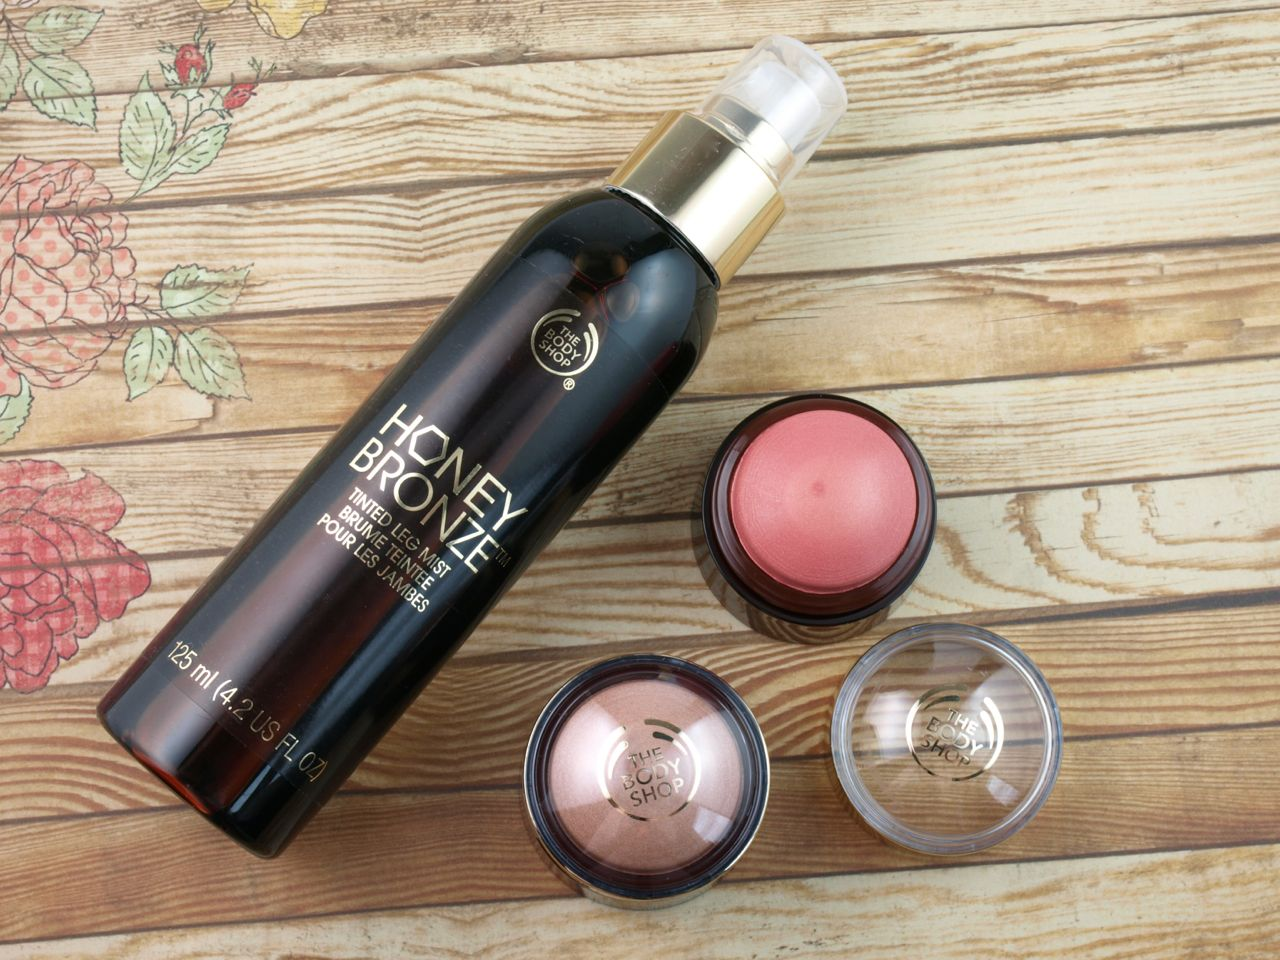 The Body Shop Honey Bronze Collection Tinted Leg Mist & Highlighting Domes: Review and Swatches